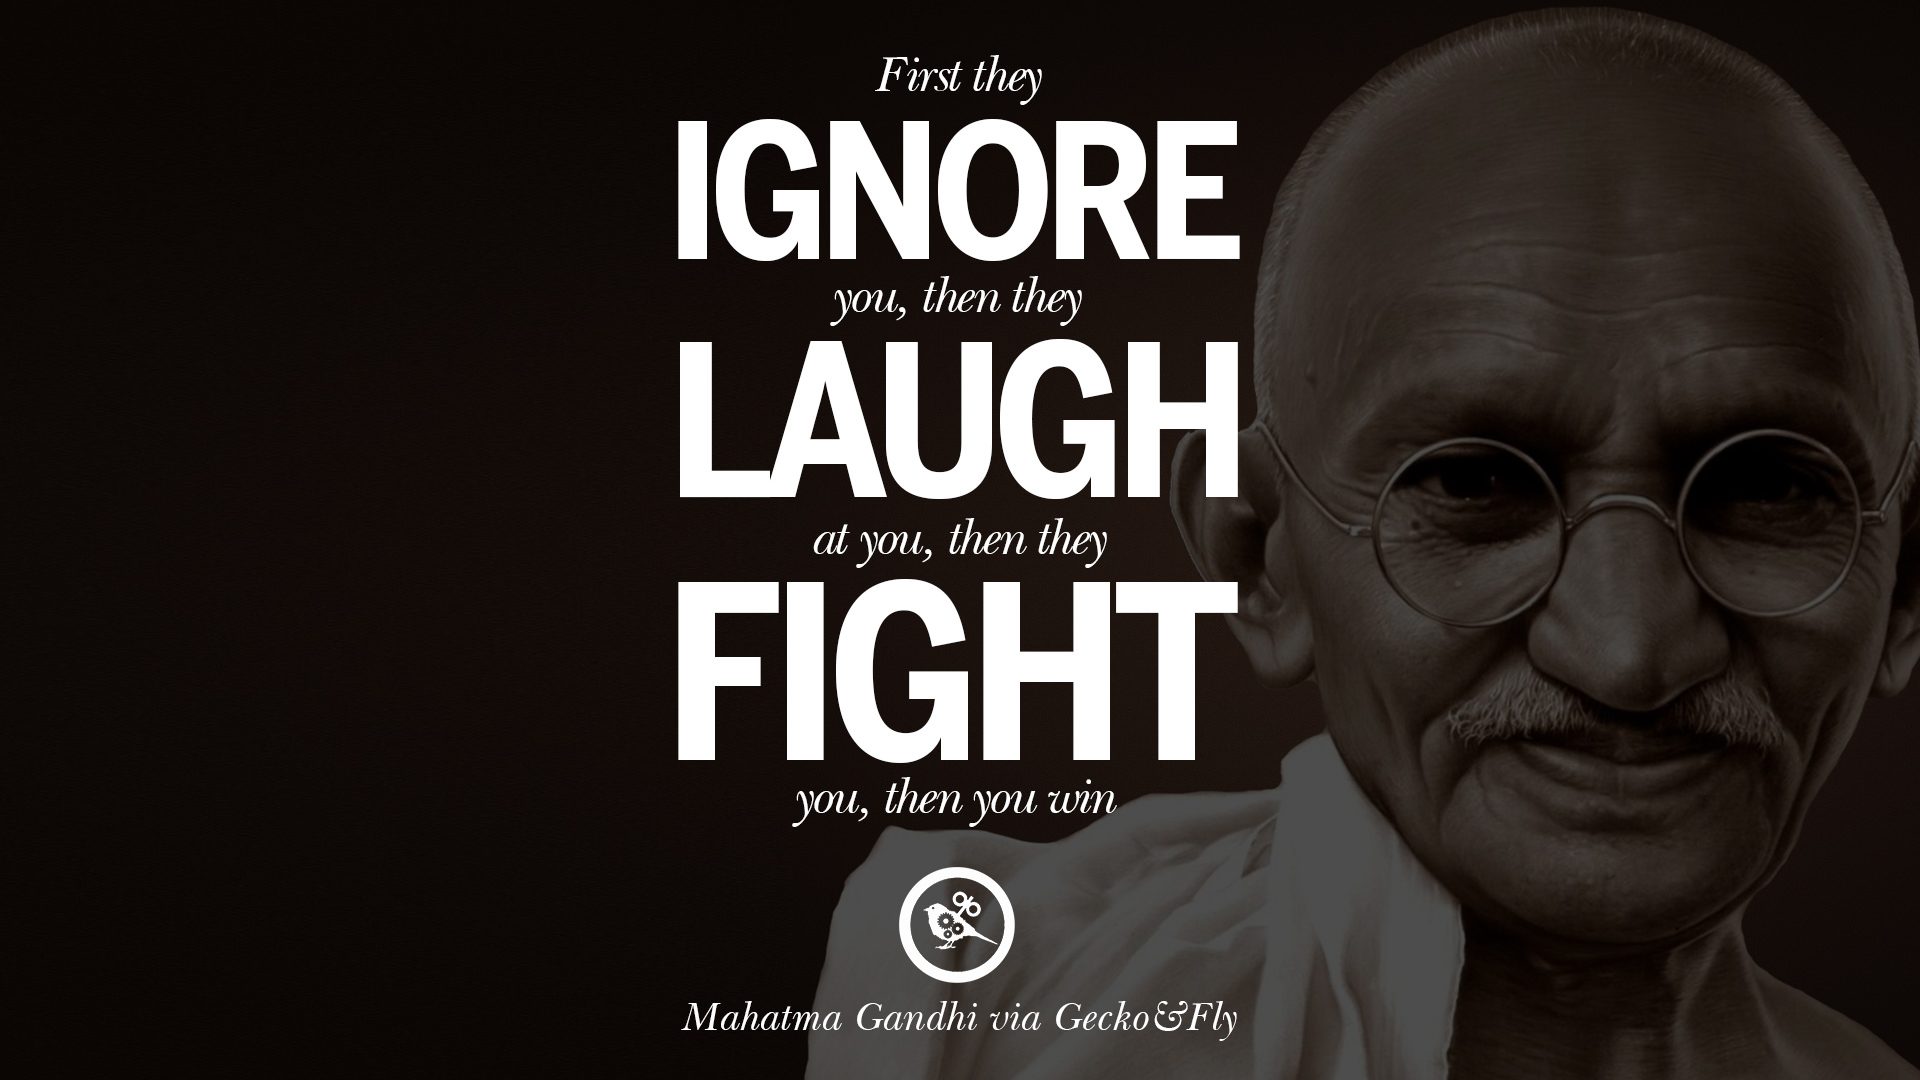 20 mahatma gandhi quotes and frases on peace, protest, and civil